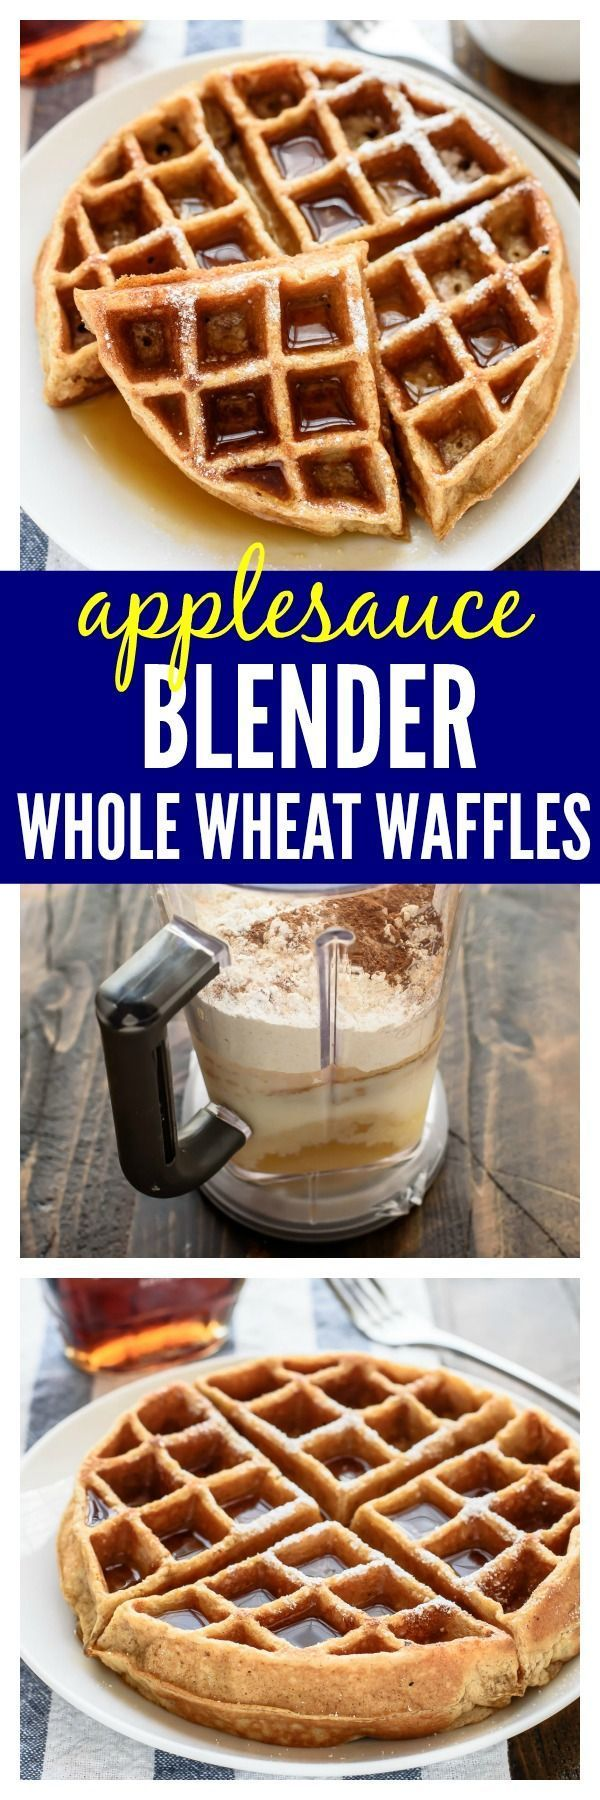 Fluffy, golden waffles that you make in your BLENDER —Made with applesauce and whole wheat flour, these healthy waffles couldn't be easier and they taste amazing!